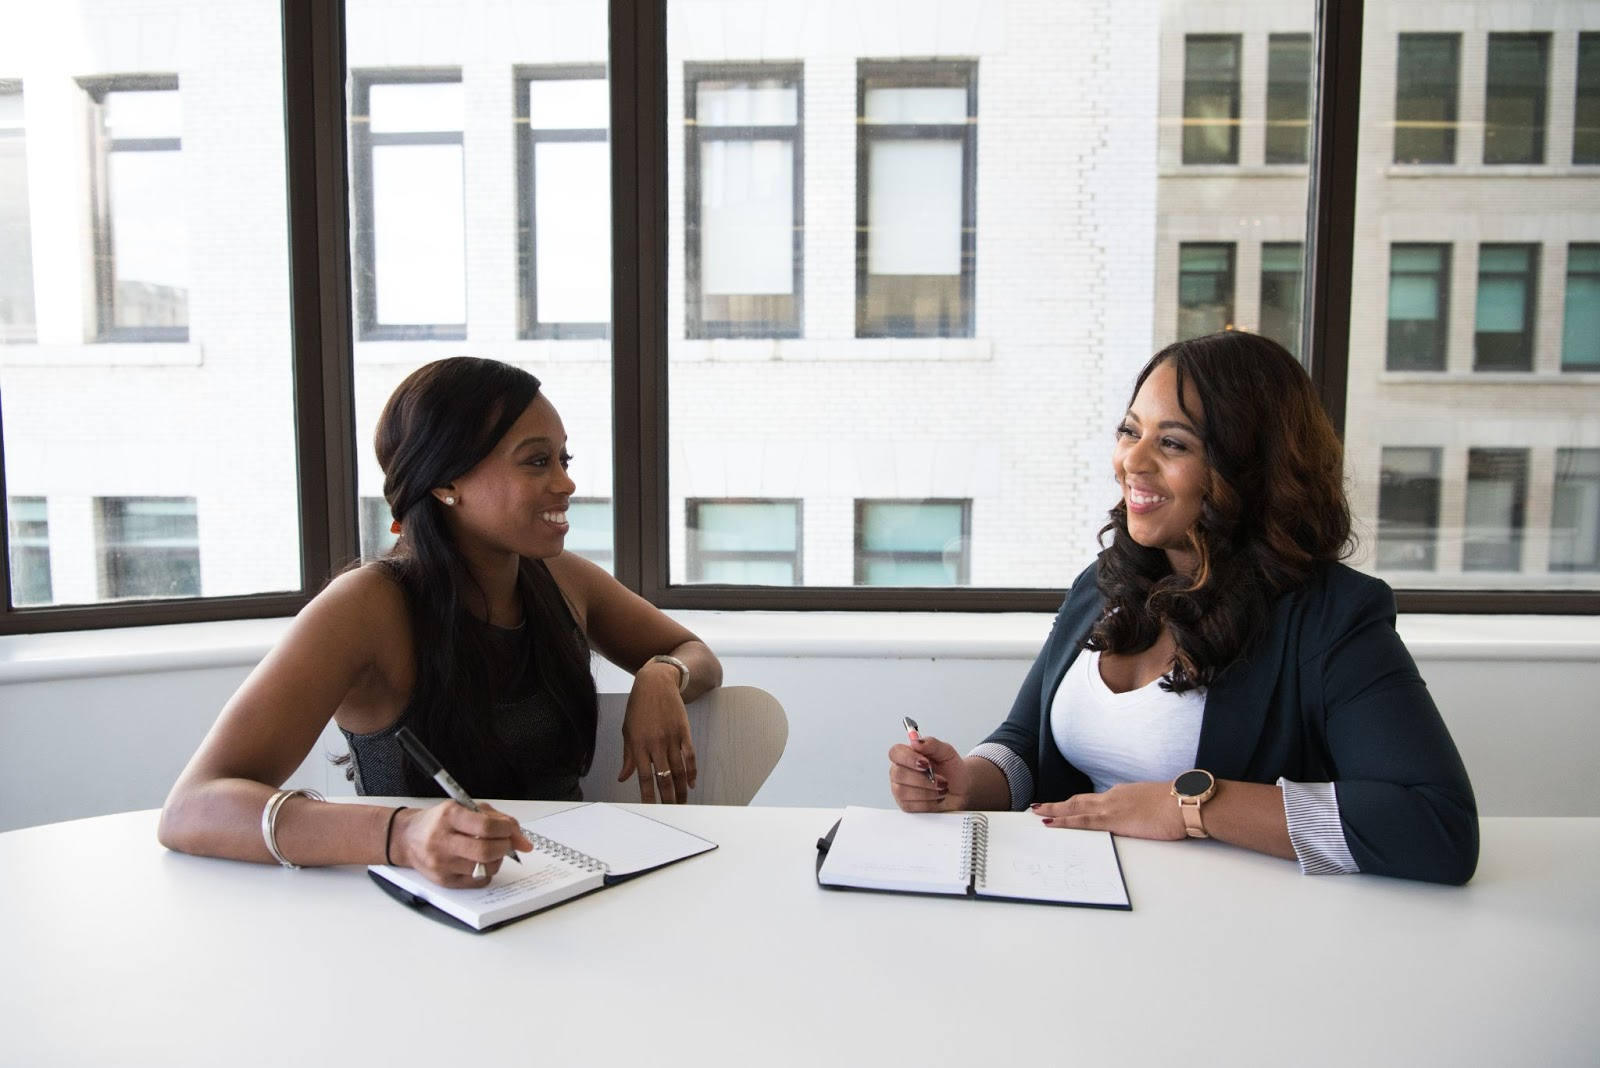 Two women smiling and working at desk